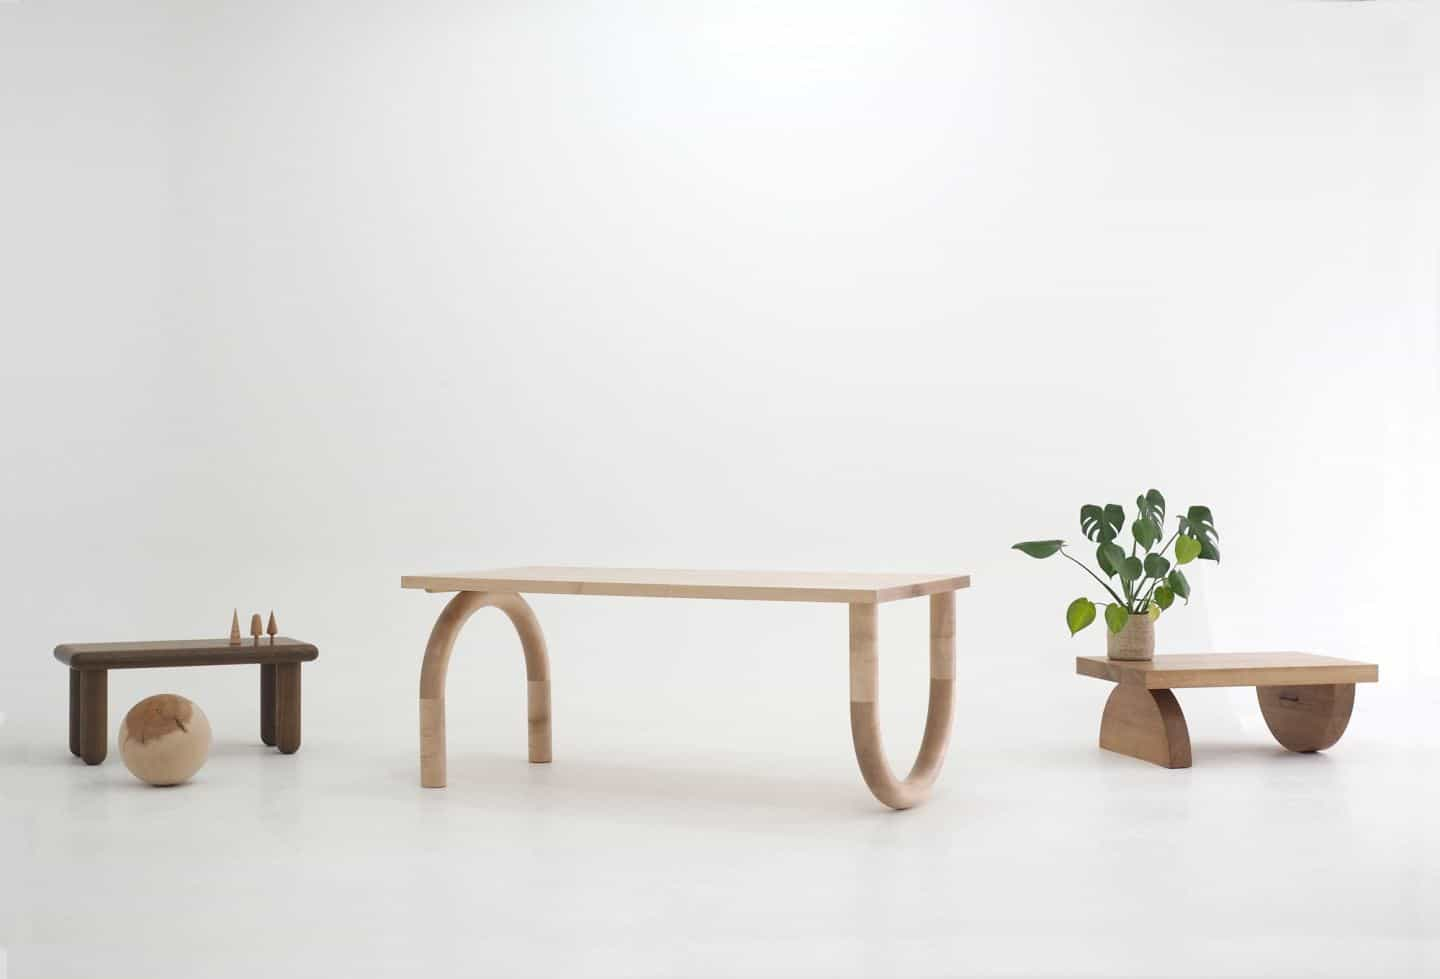 3 tables made by Forge Creative, an independent company that handcrafts custom wooden furniture and home accessories.